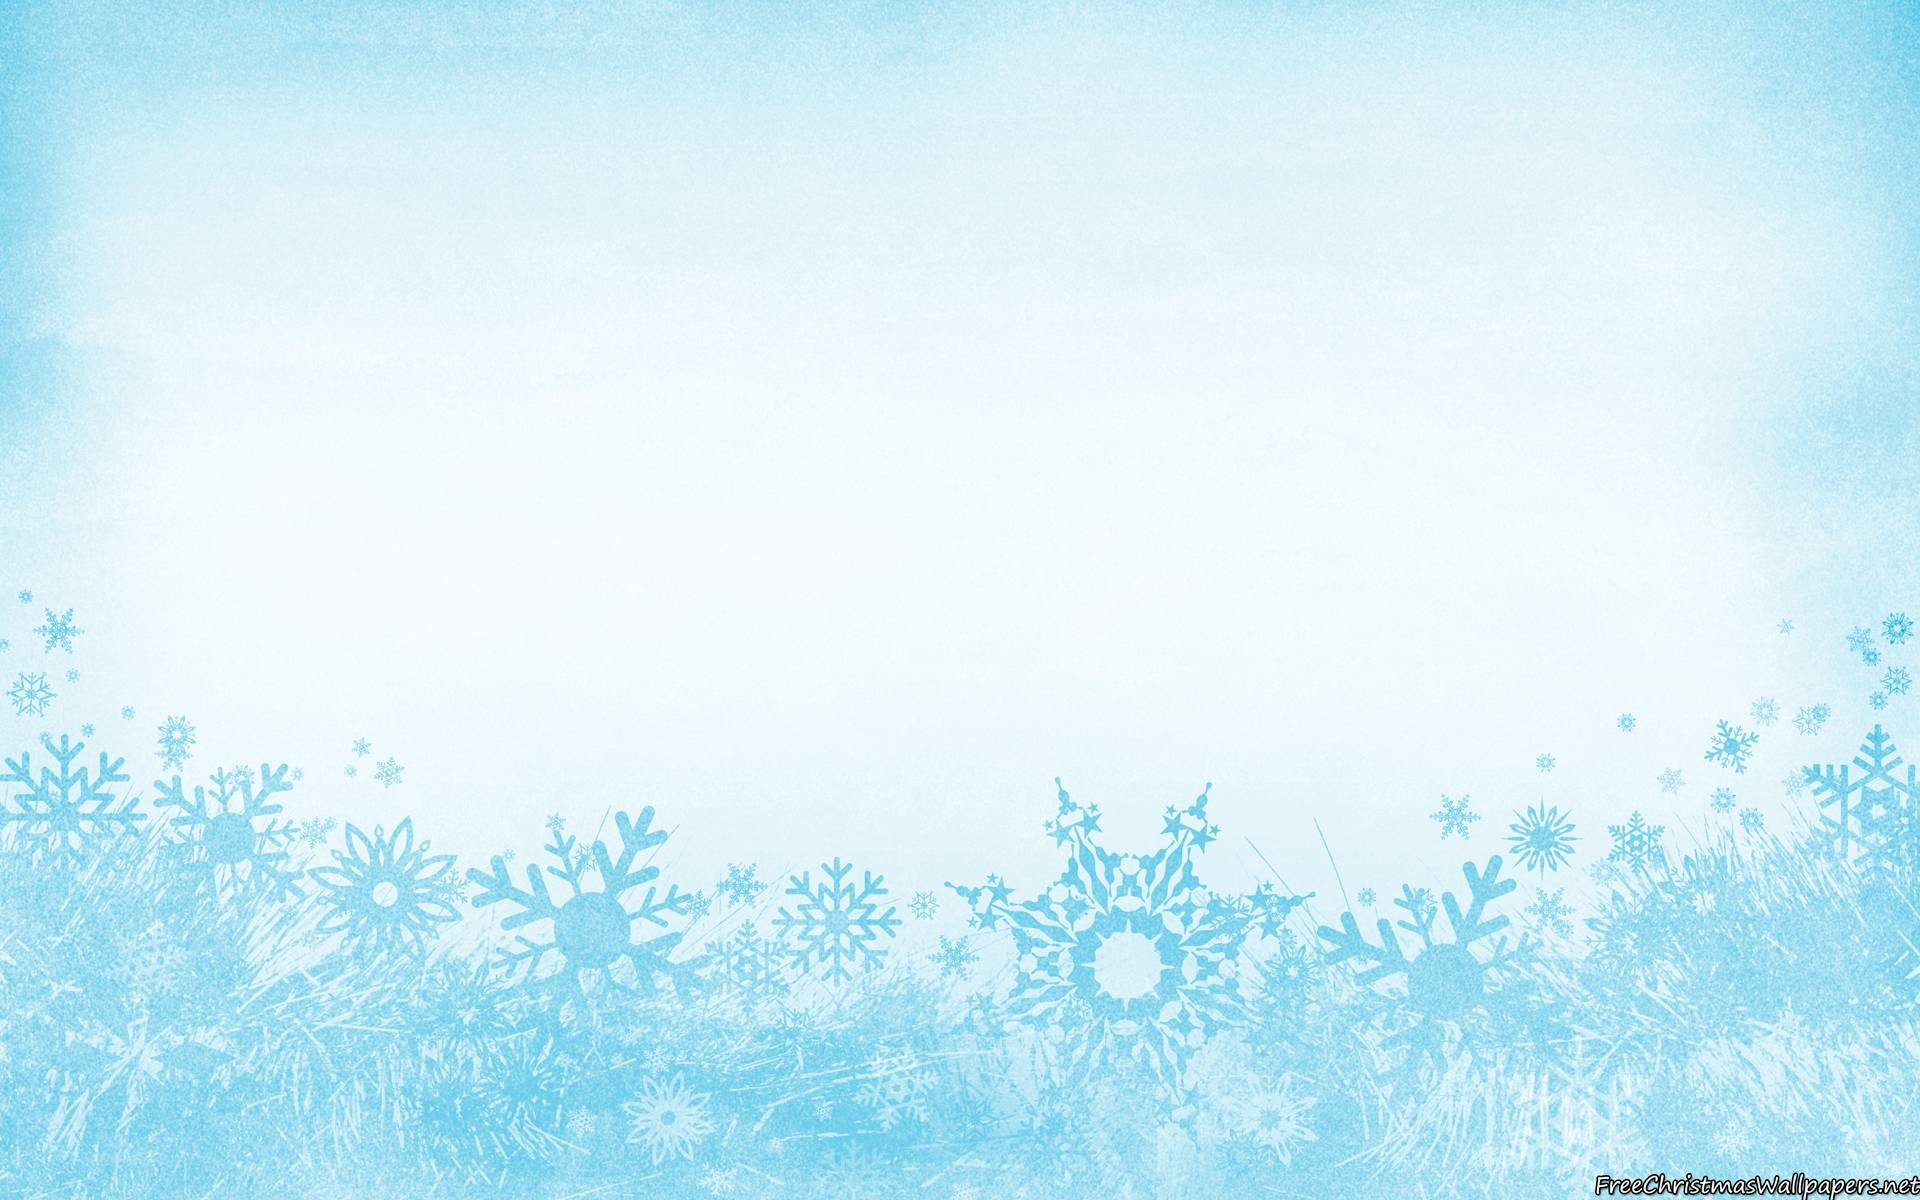 undefined Backgrounds For Christmas Wallpapers)